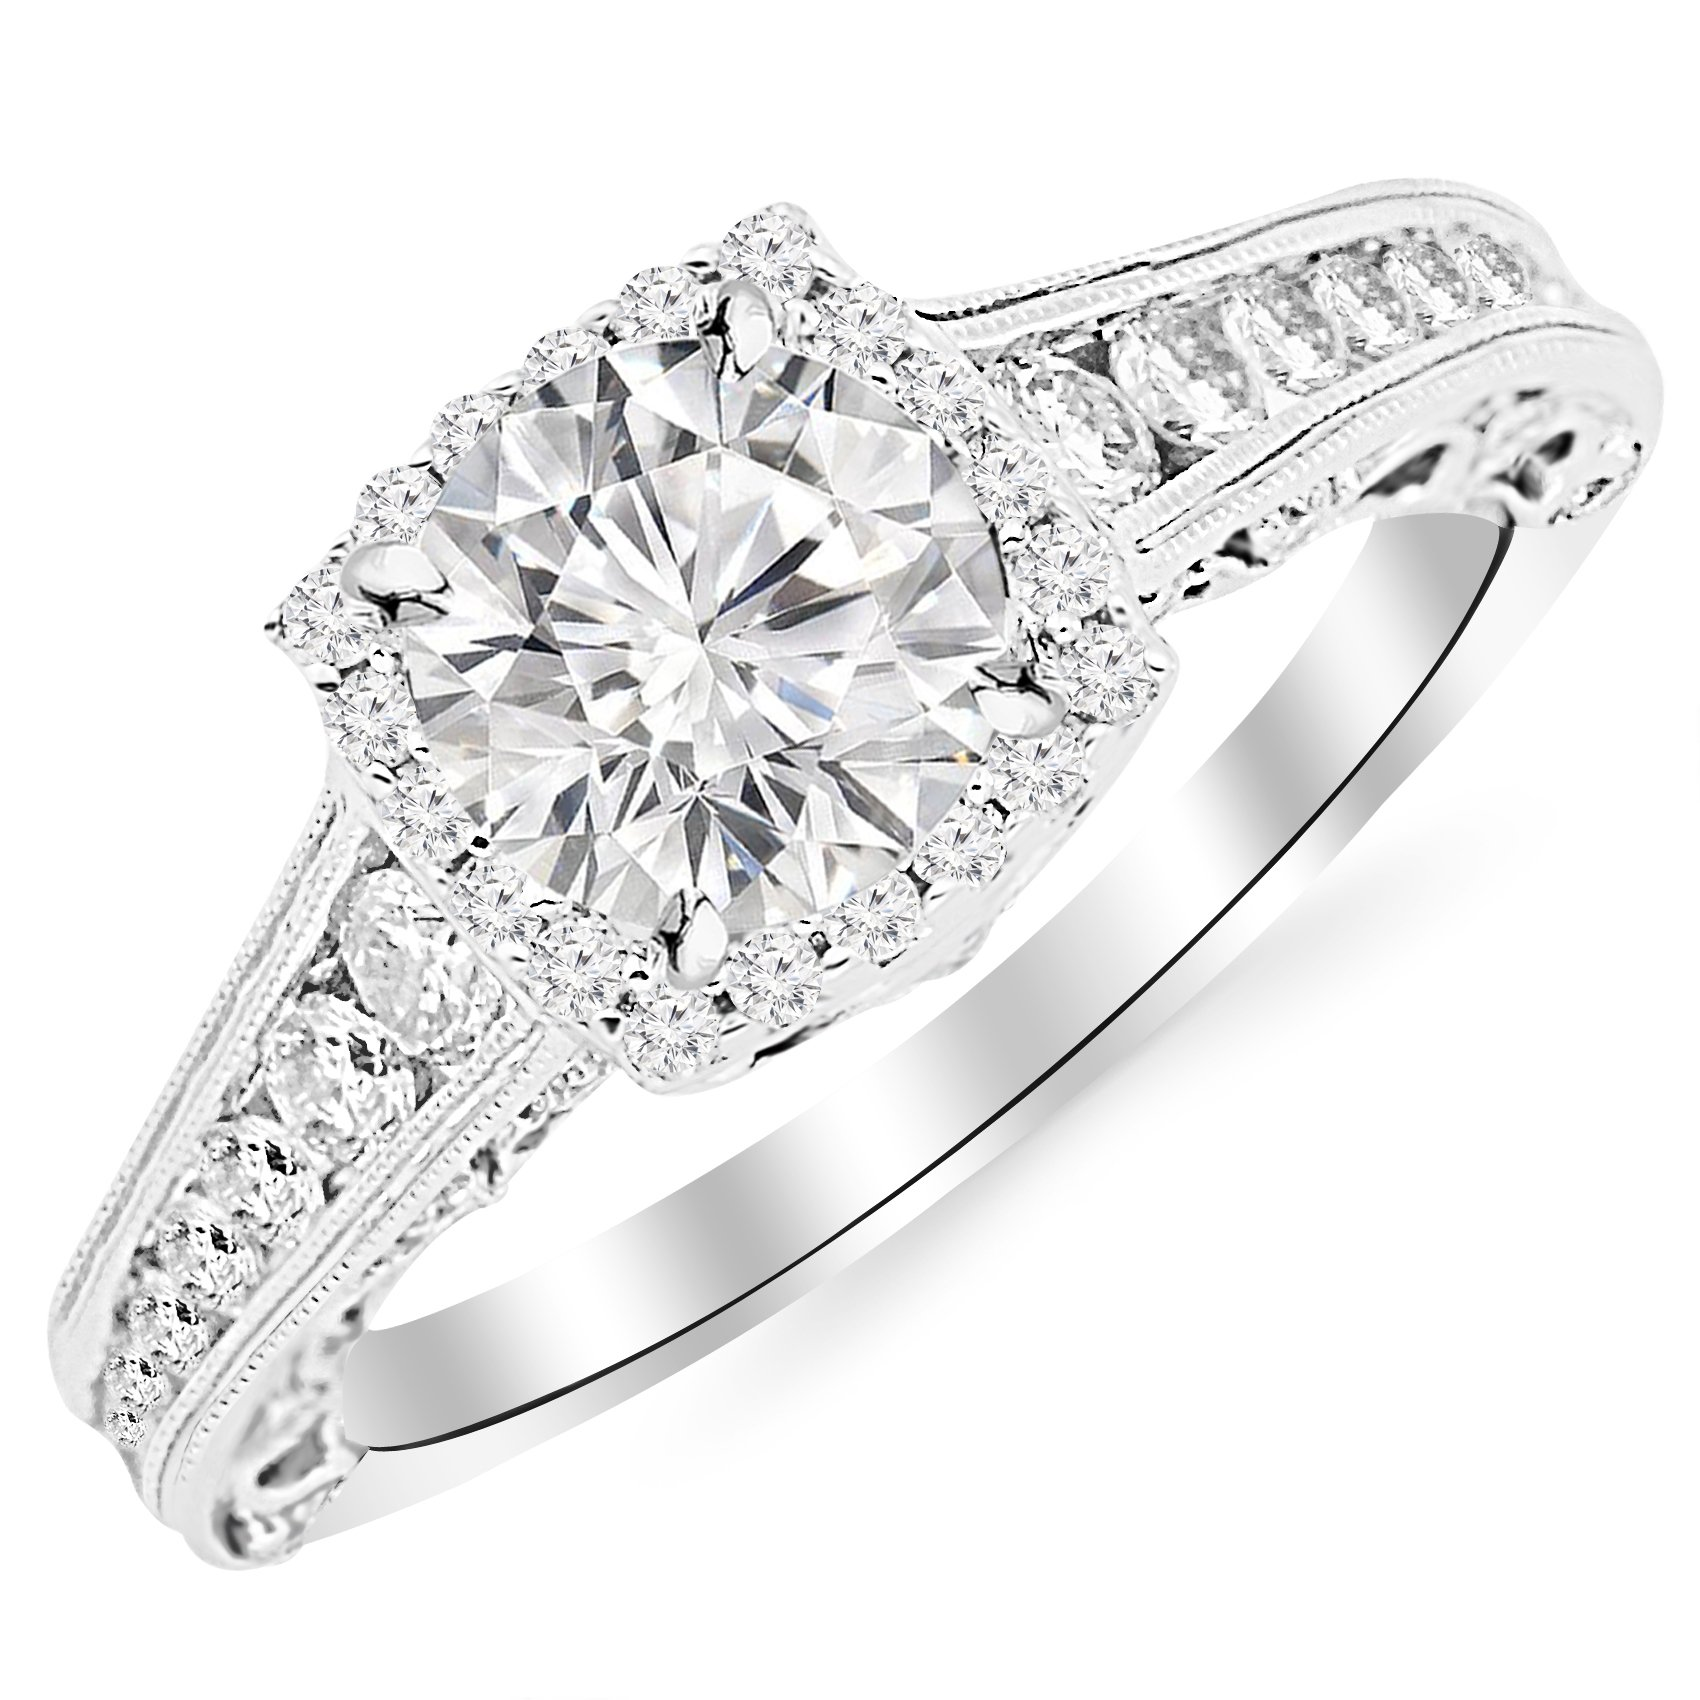 2.25 Carat 14K White Gold Vintage Halo Style Channel Set Round Brilliant Diamond Engagement Ring Milgrain with a 1.5 Carat Moissanite Center